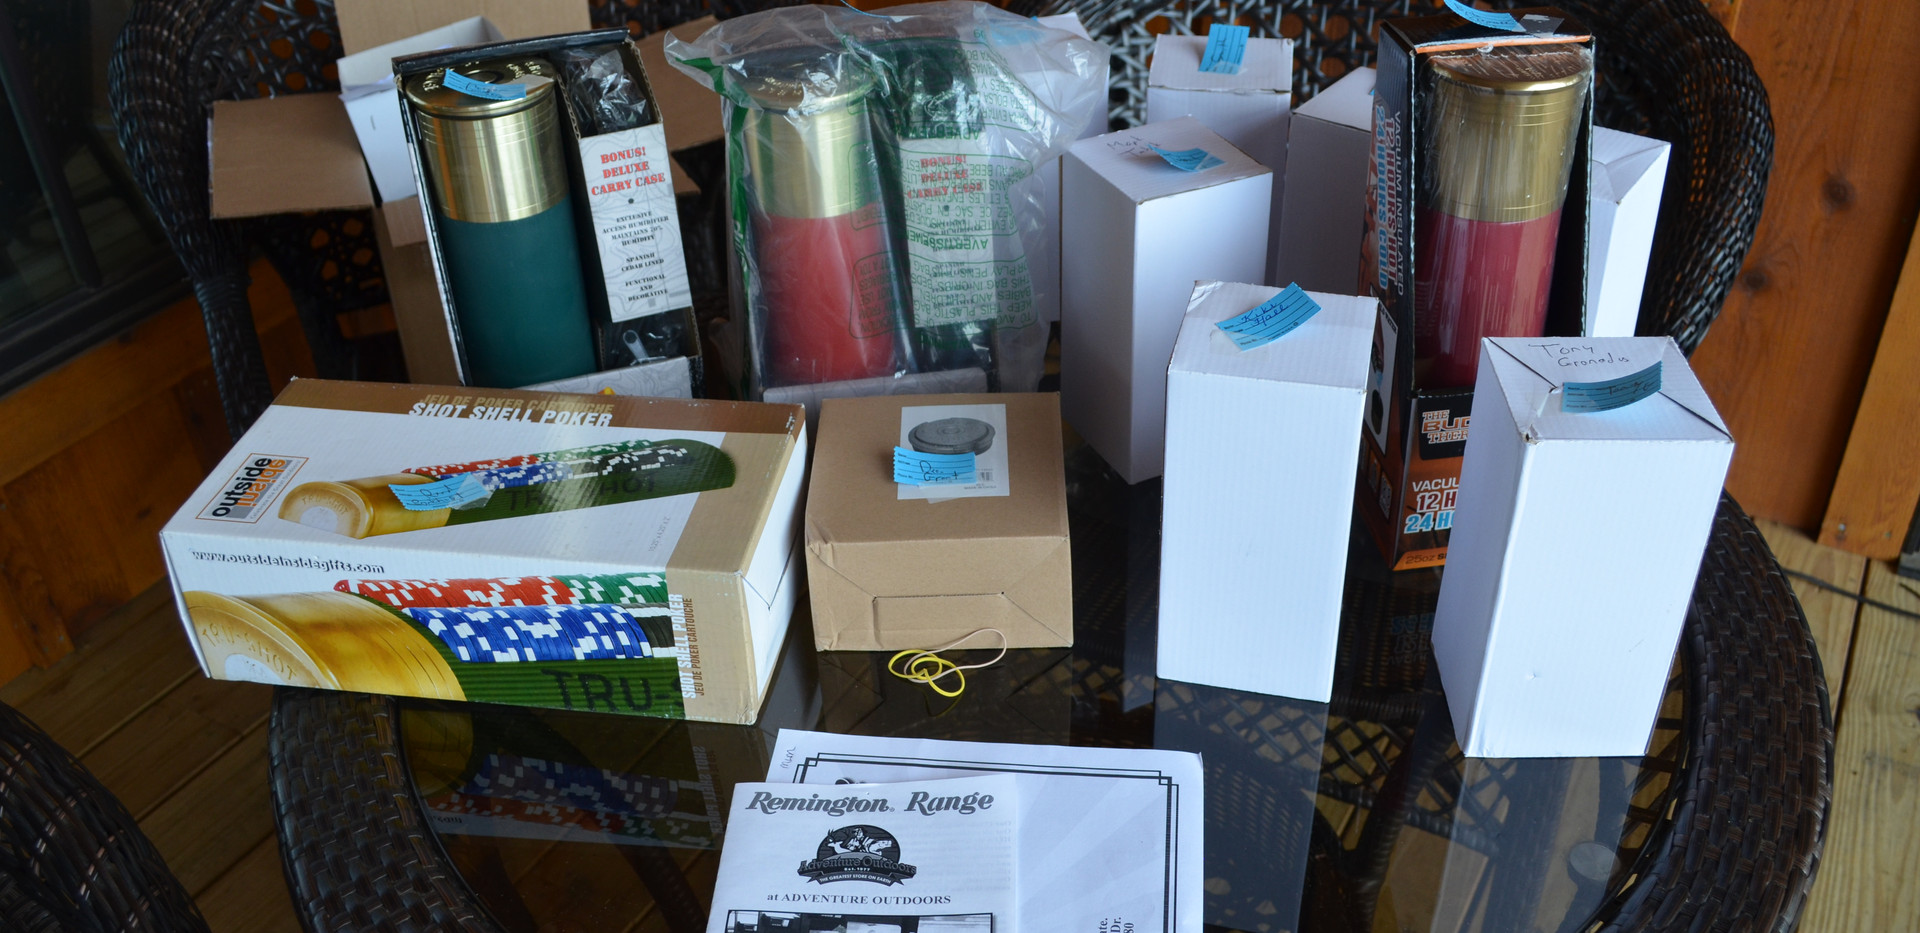 Thanks for all the great raffle prizes